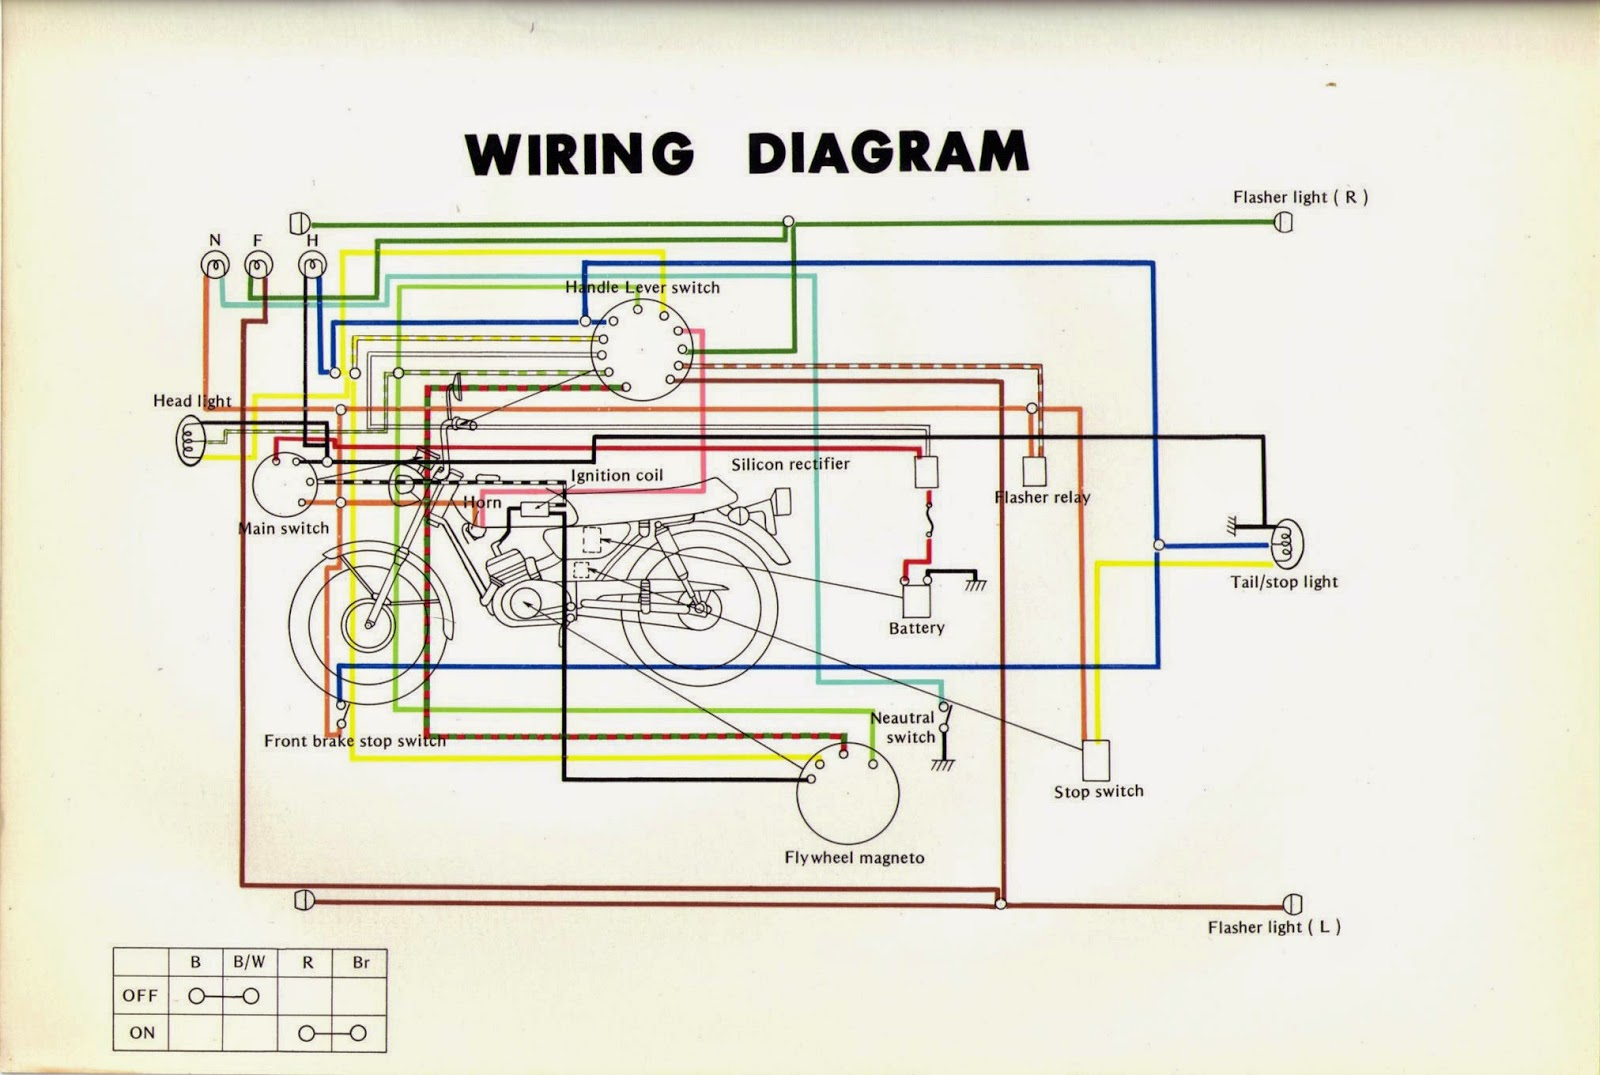 Ls2 Ignition Diagram | Schematic Diagram on small engine key switch wiring, small engine ignition coil replacement, small engine ignition diagram, small engine alternator wiring,